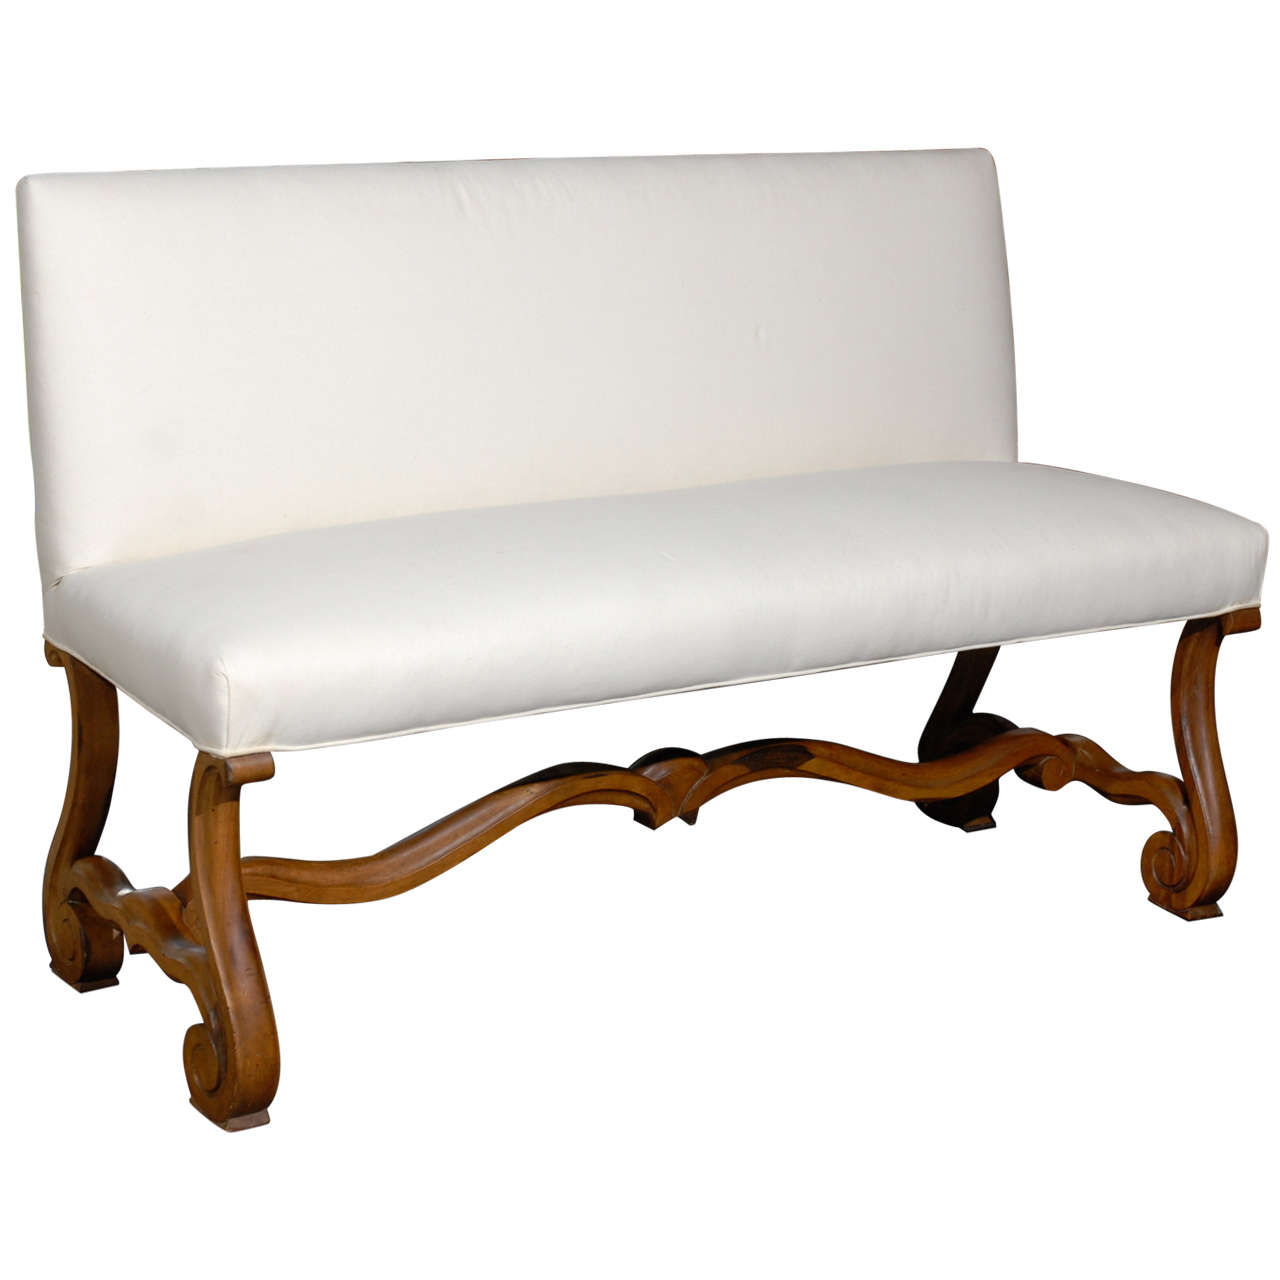 French Upholstered Bench/ Settee 1